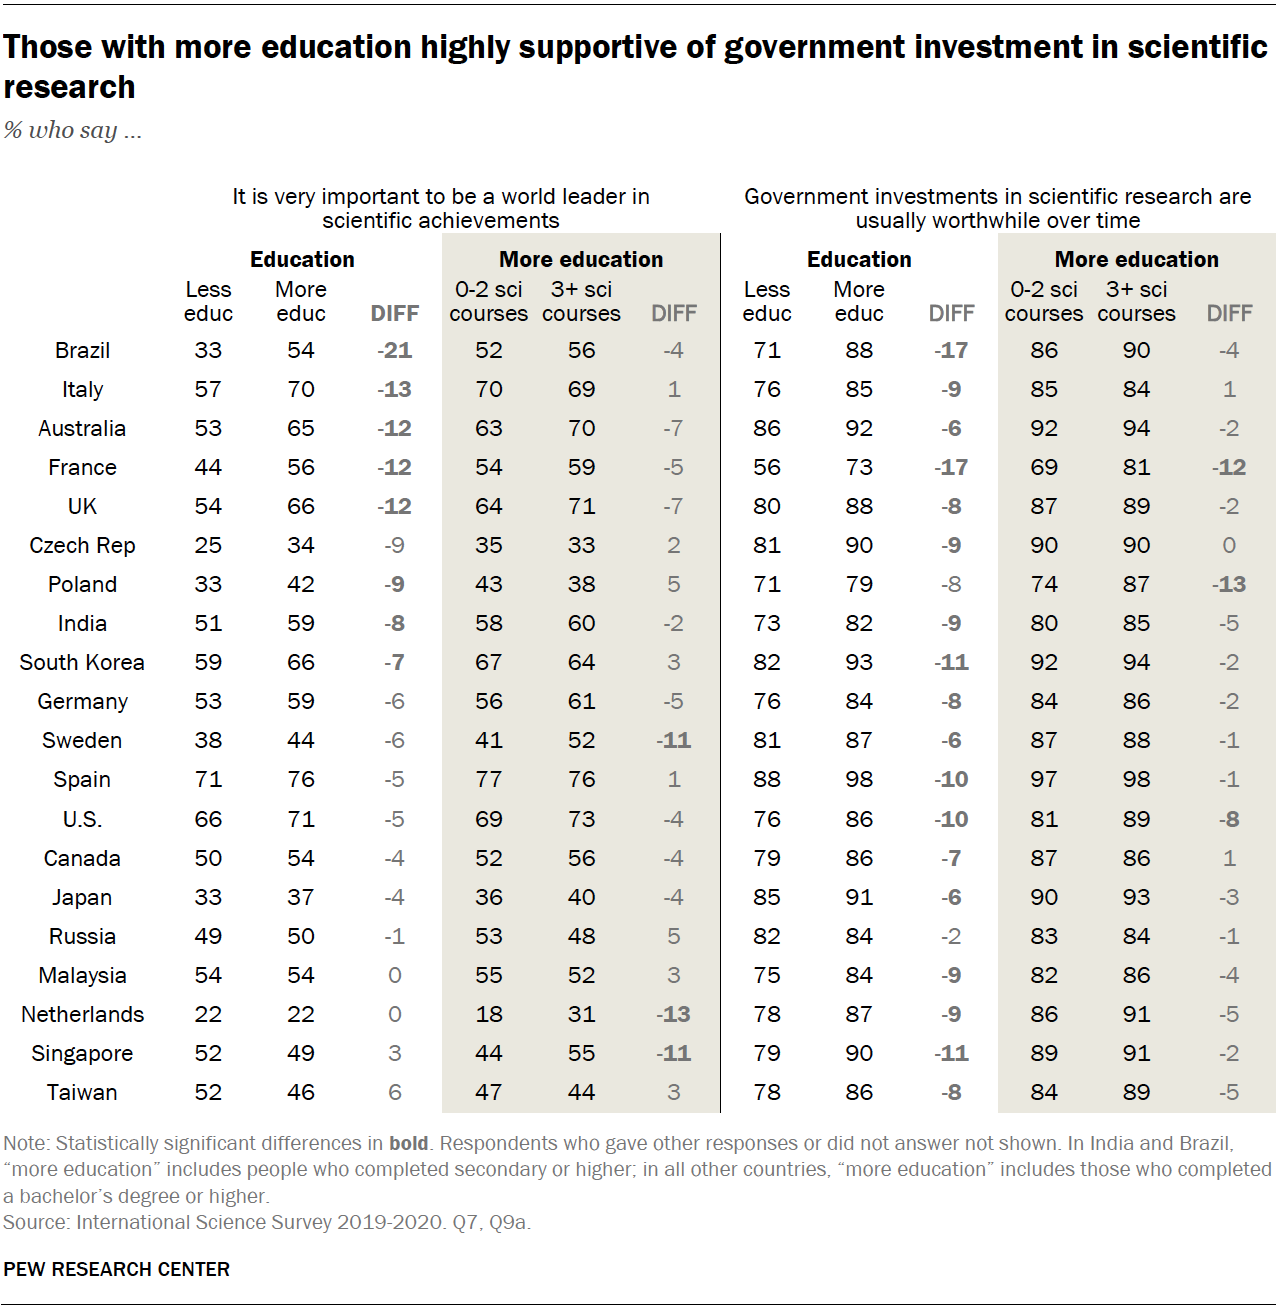 Chart shows those with more education highly supportive of government investment in scientific research